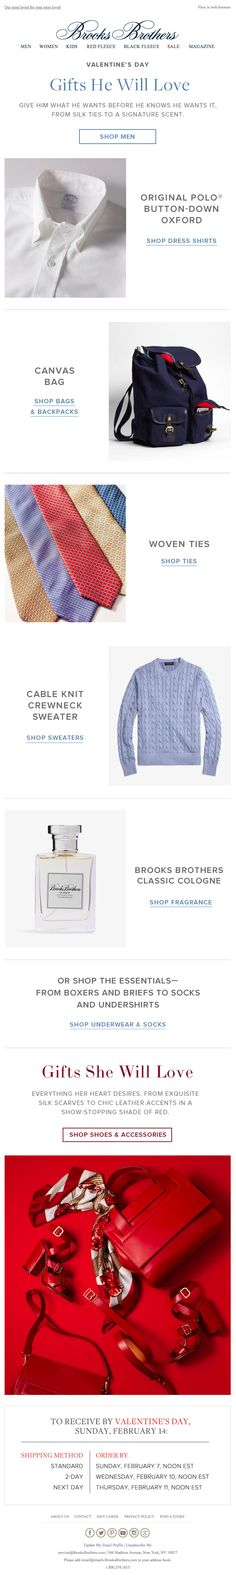 Brooks Brothers Valentine's Day email 2016